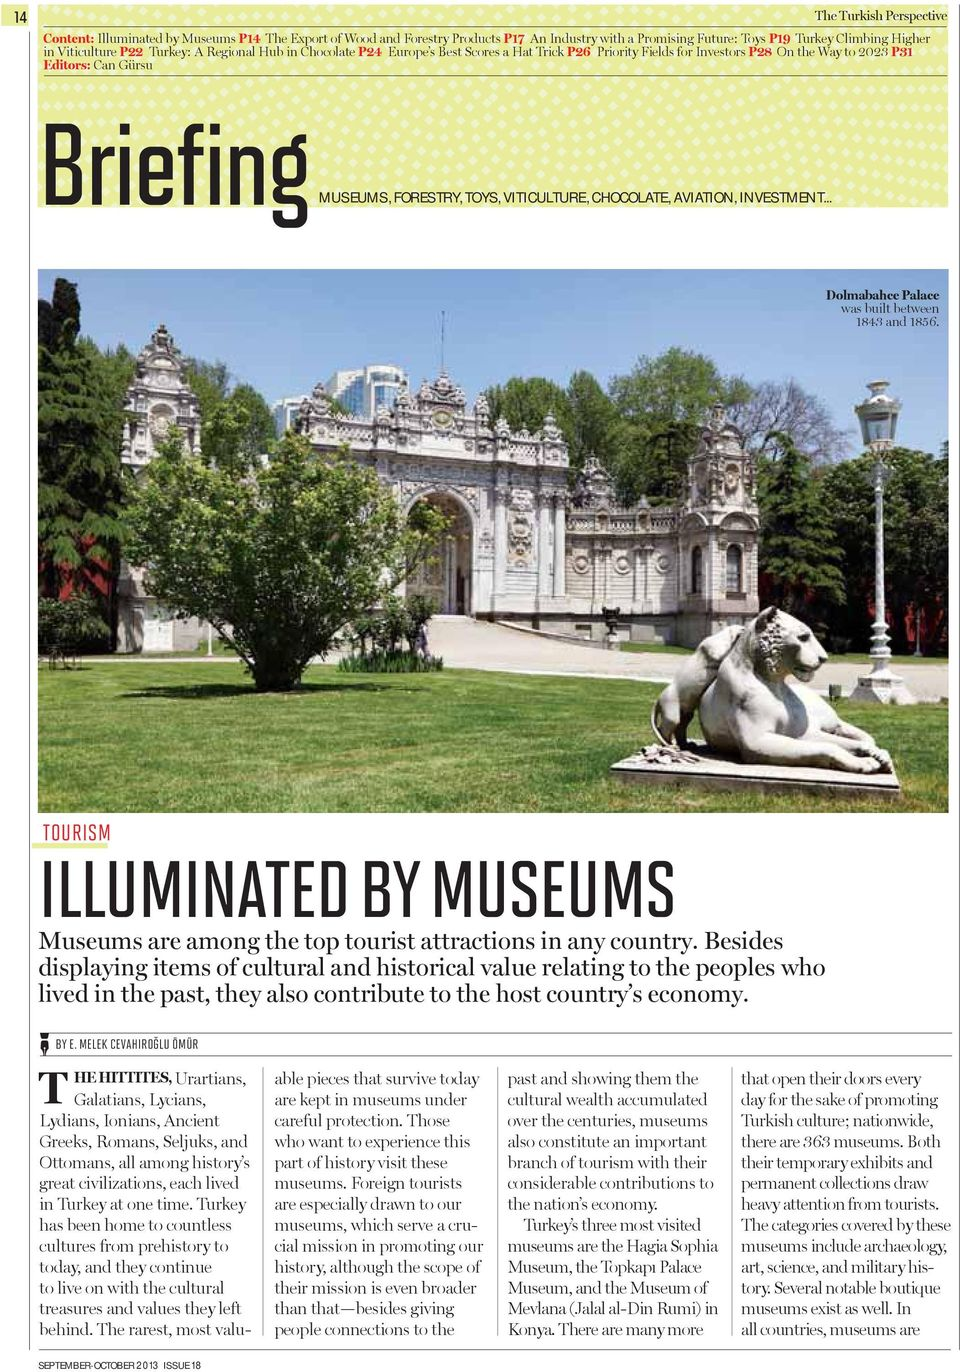 CHOCOLATE, AVIATION, INVESTMENT... Dolmabahce Palace was built between 1843 and 1856. TOURISM ILLUMINATED BY MUSEUMS Museums are among the top tourist attractions in any country.